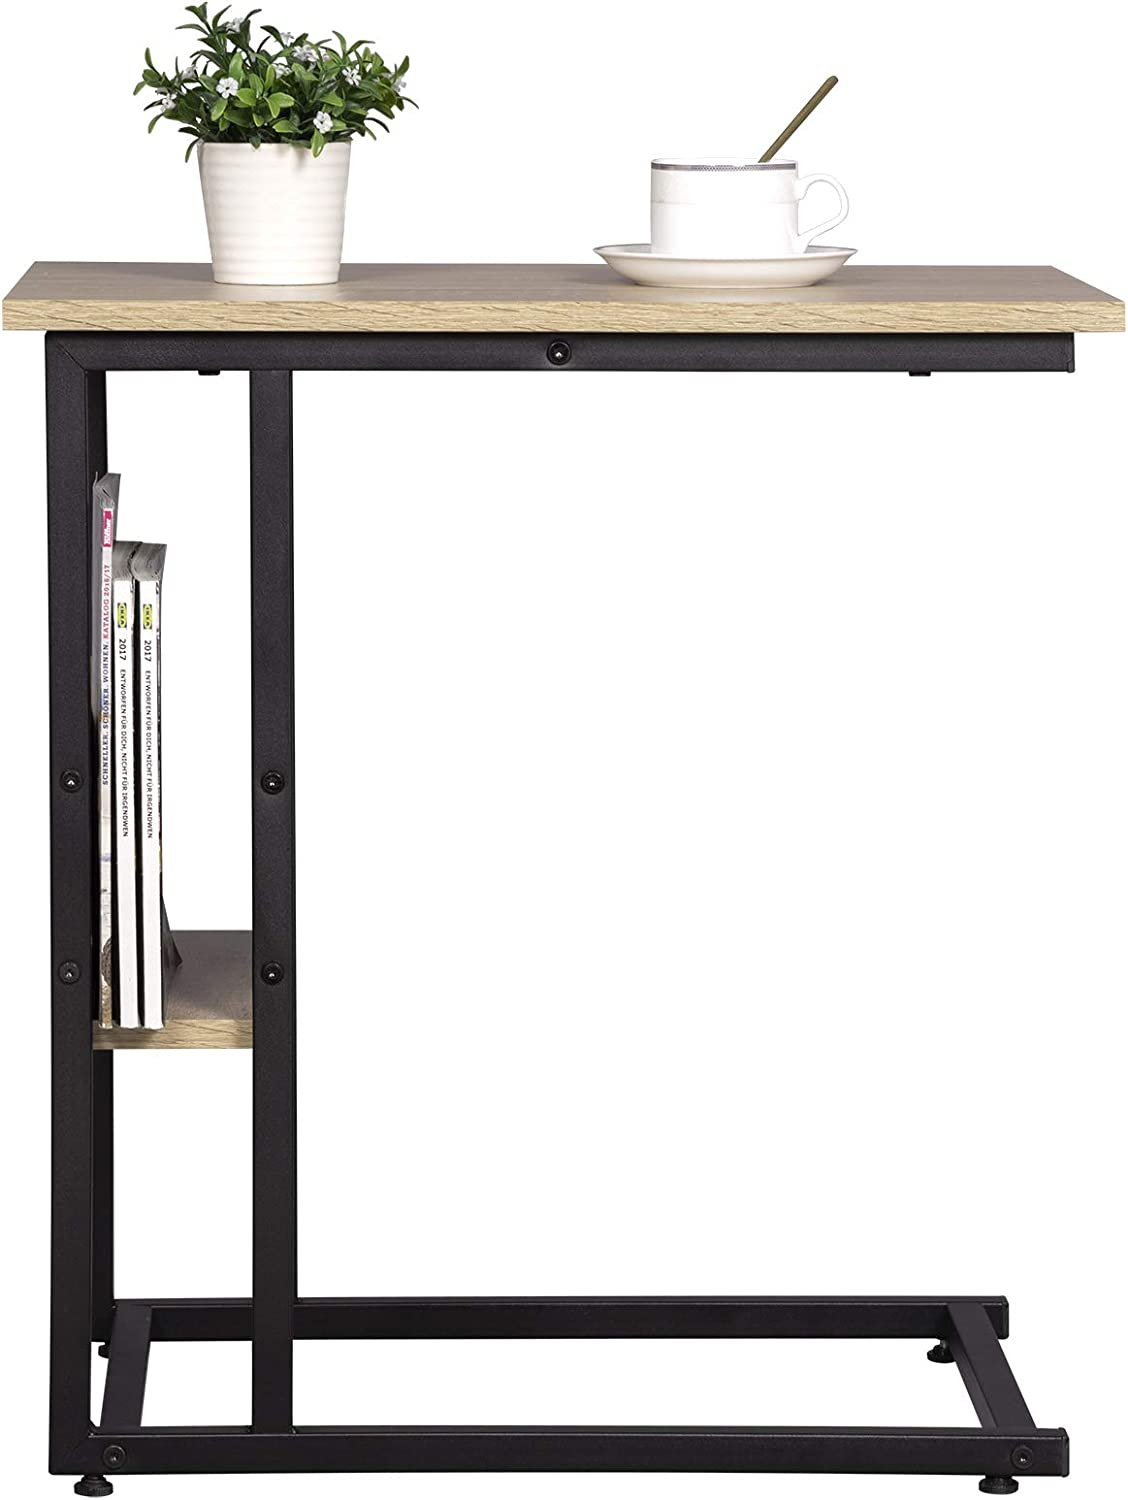 eSituro Light Oak End Table Console Sofa Table with shelf storage Beside Table Side Table Small Bedroom Table Wood Metal Legs Living Room SCD0081